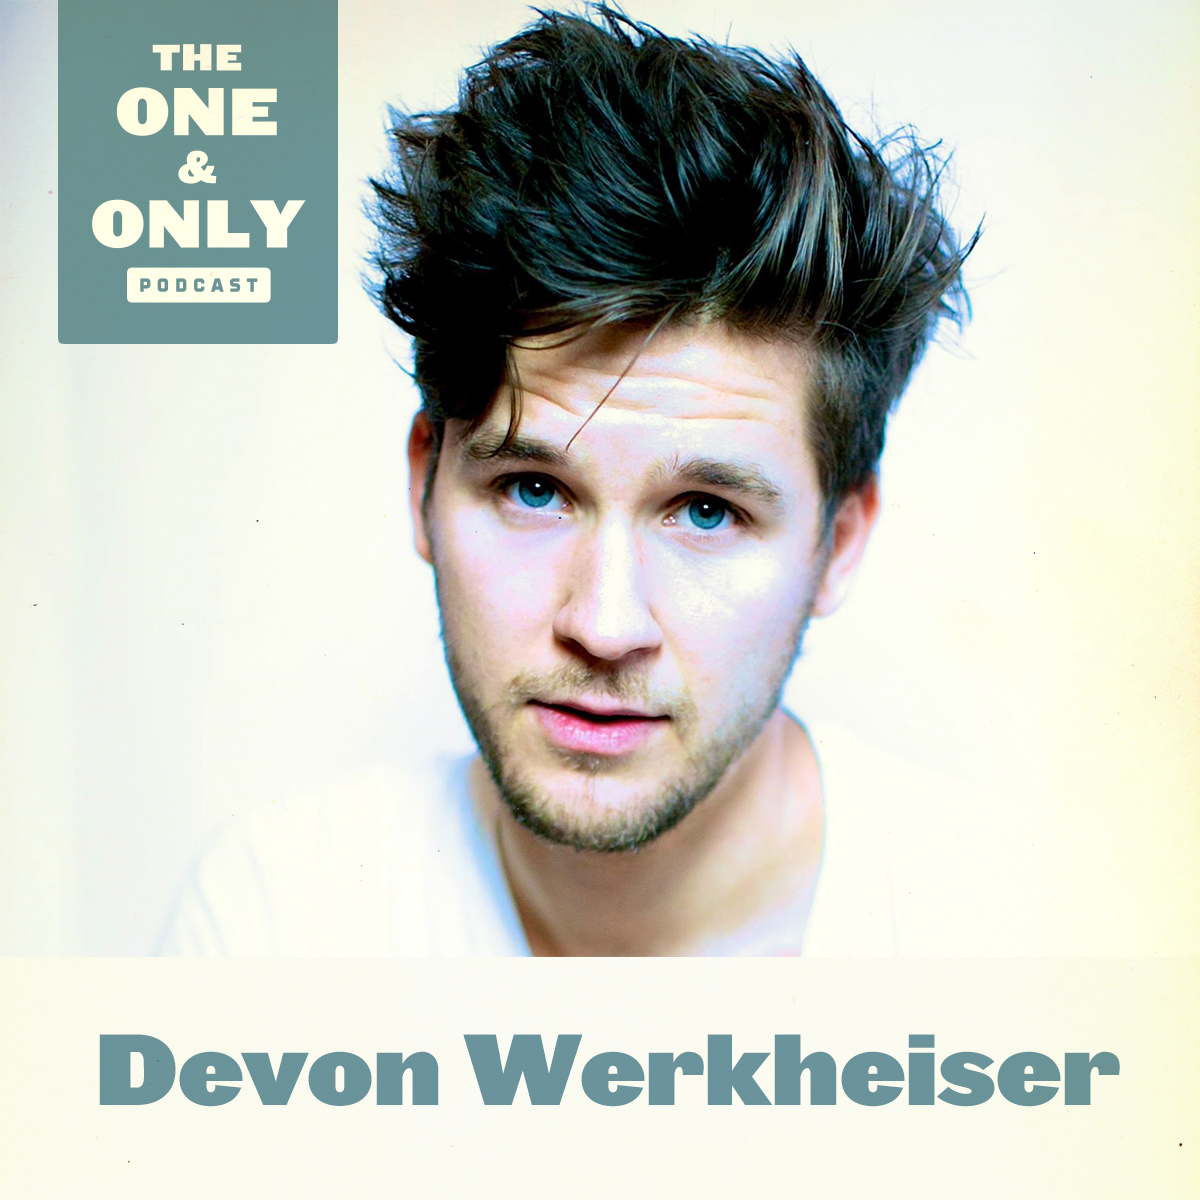 devon werkheiser moviesdevon werkheiser - crowns, devon werkheiser filme, devon werkheiser wiki, devon werkheiser instagram, devon werkheiser, devon werkheiser 2015, devon werkheiser twitter, devon werkheiser if eyes could speak lyrics, devon werkheiser википедия, devon werkheiser net worth, devon werkheiser y lindsey shaw, devon werkheiser age, devon werkheiser criminal minds, devon werkheiser shirtless, devon werkheiser movies, devon werkheiser songs, devon werkheiser fidanzata, devon werkheiser girlfriend, devon werkheiser facebook, devon werkheiser canzoni